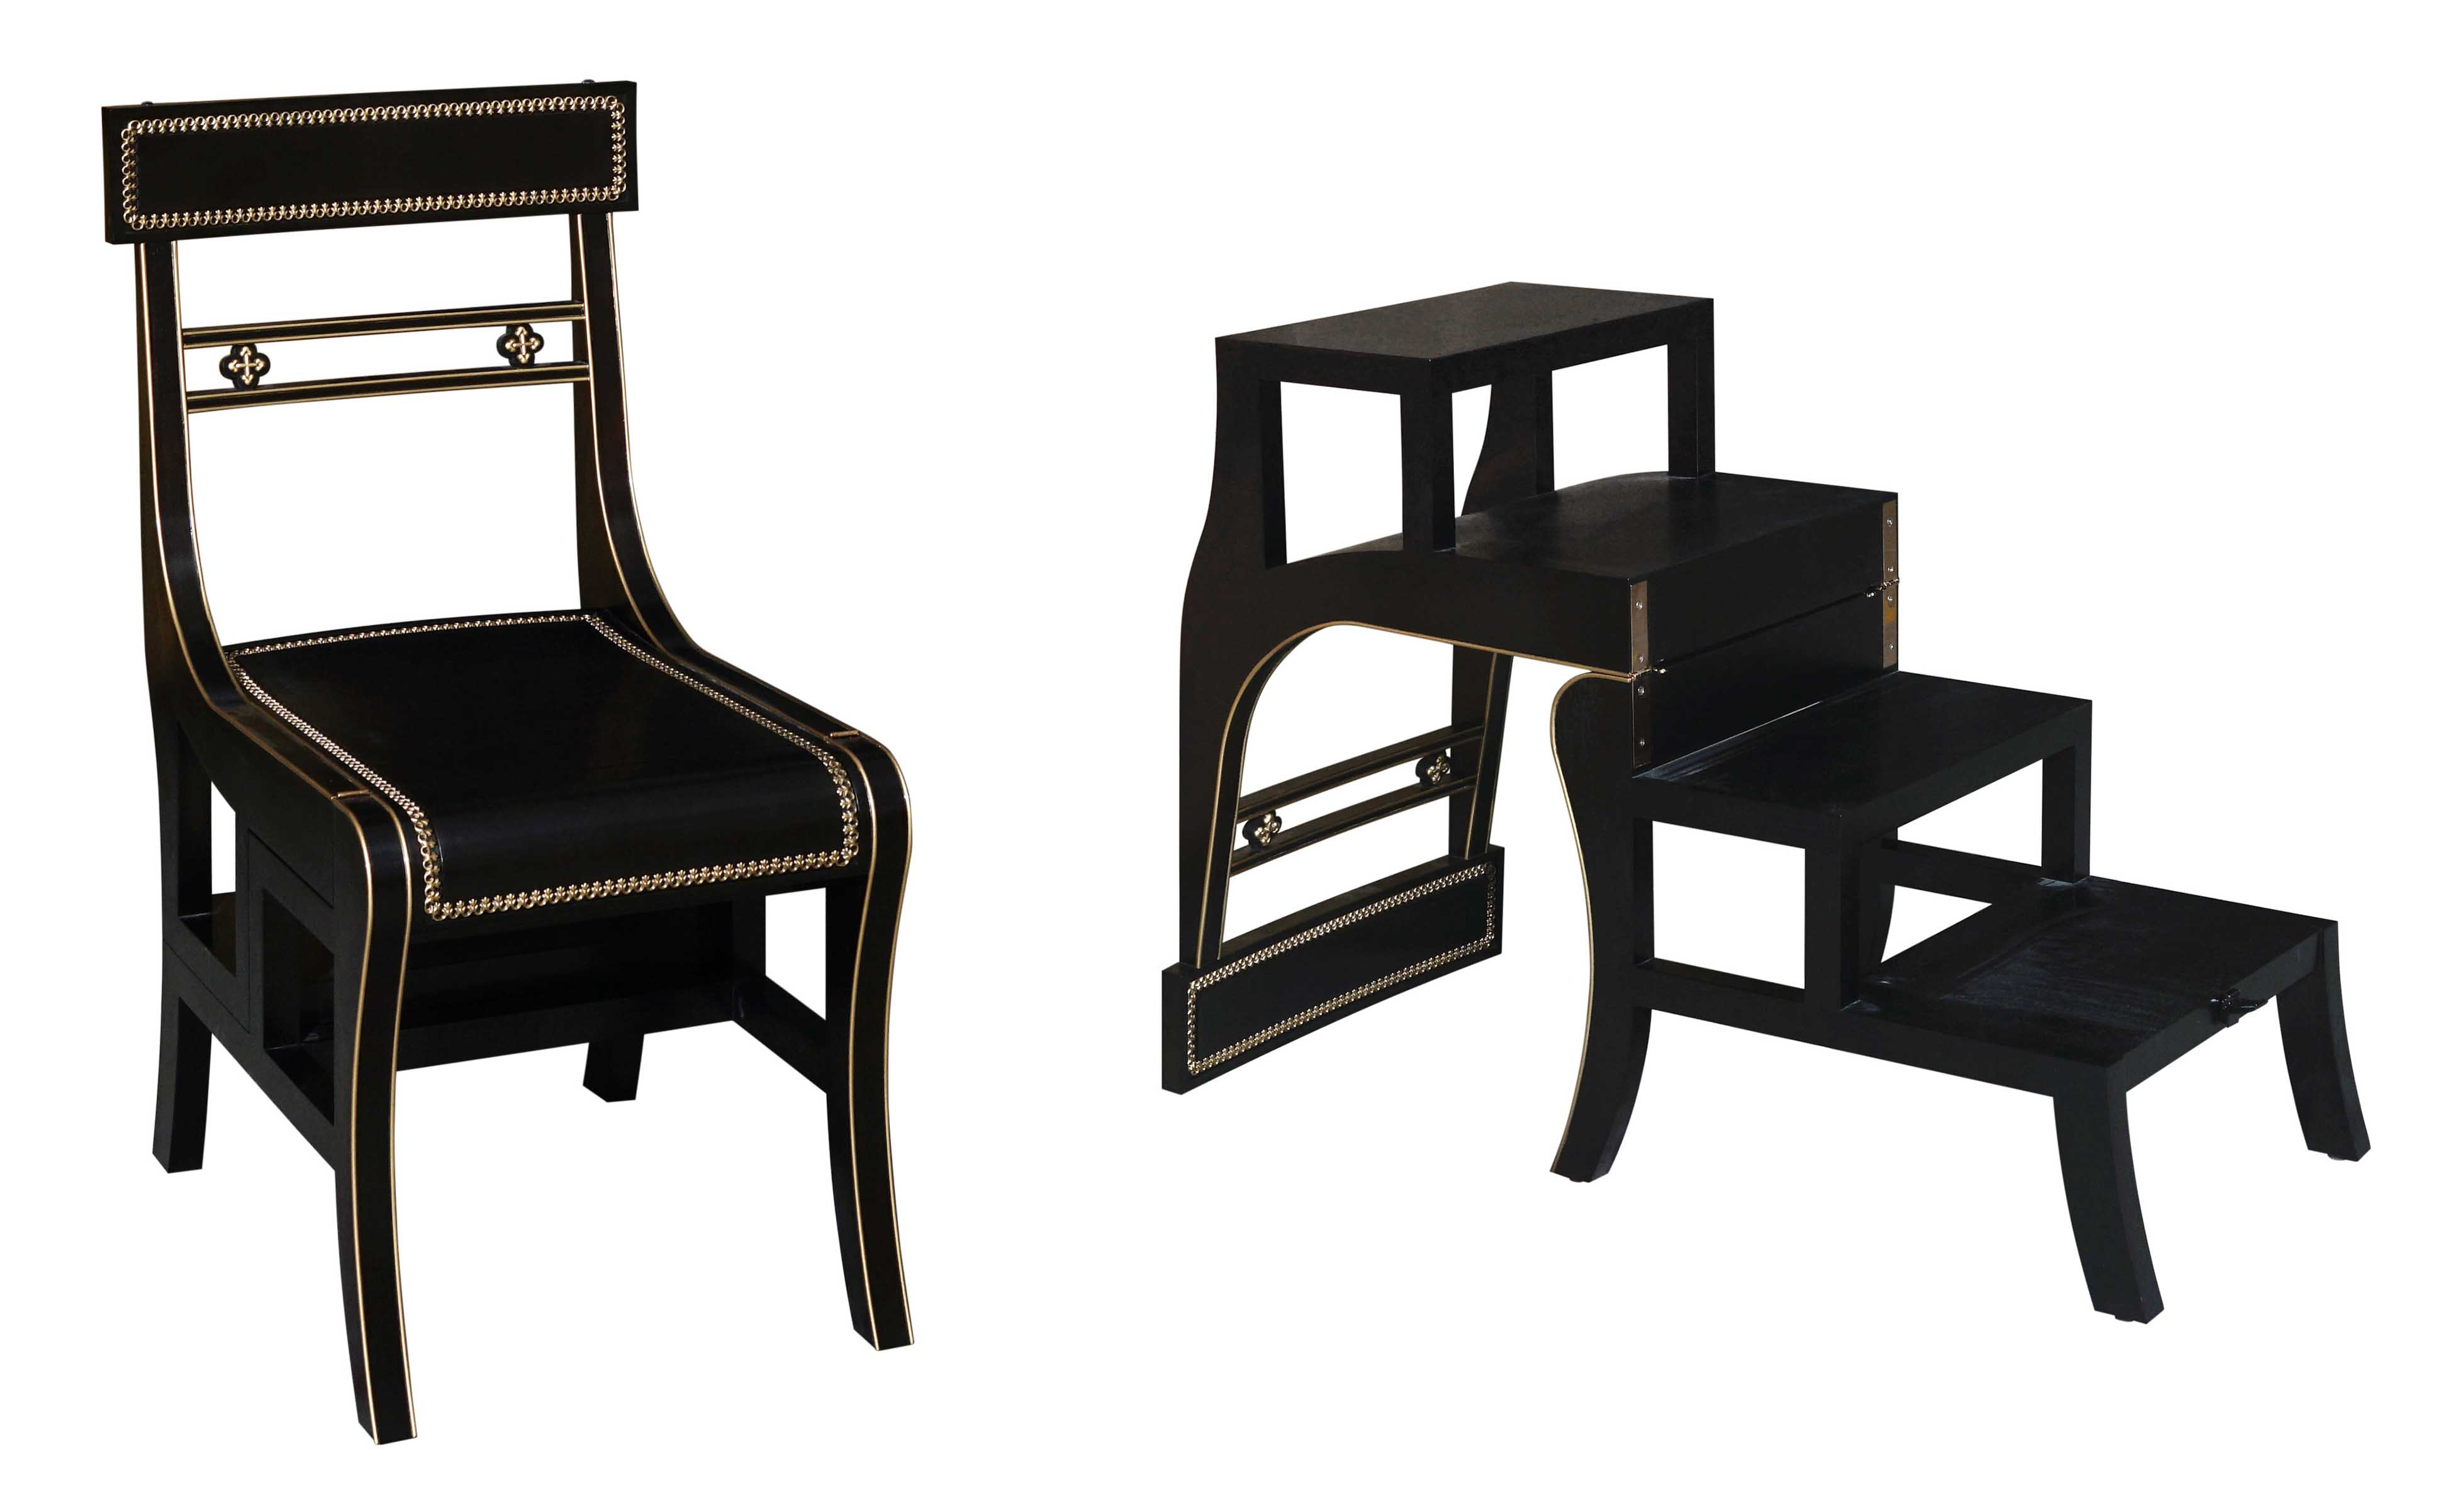 bespoke library chair and stool by Decca London